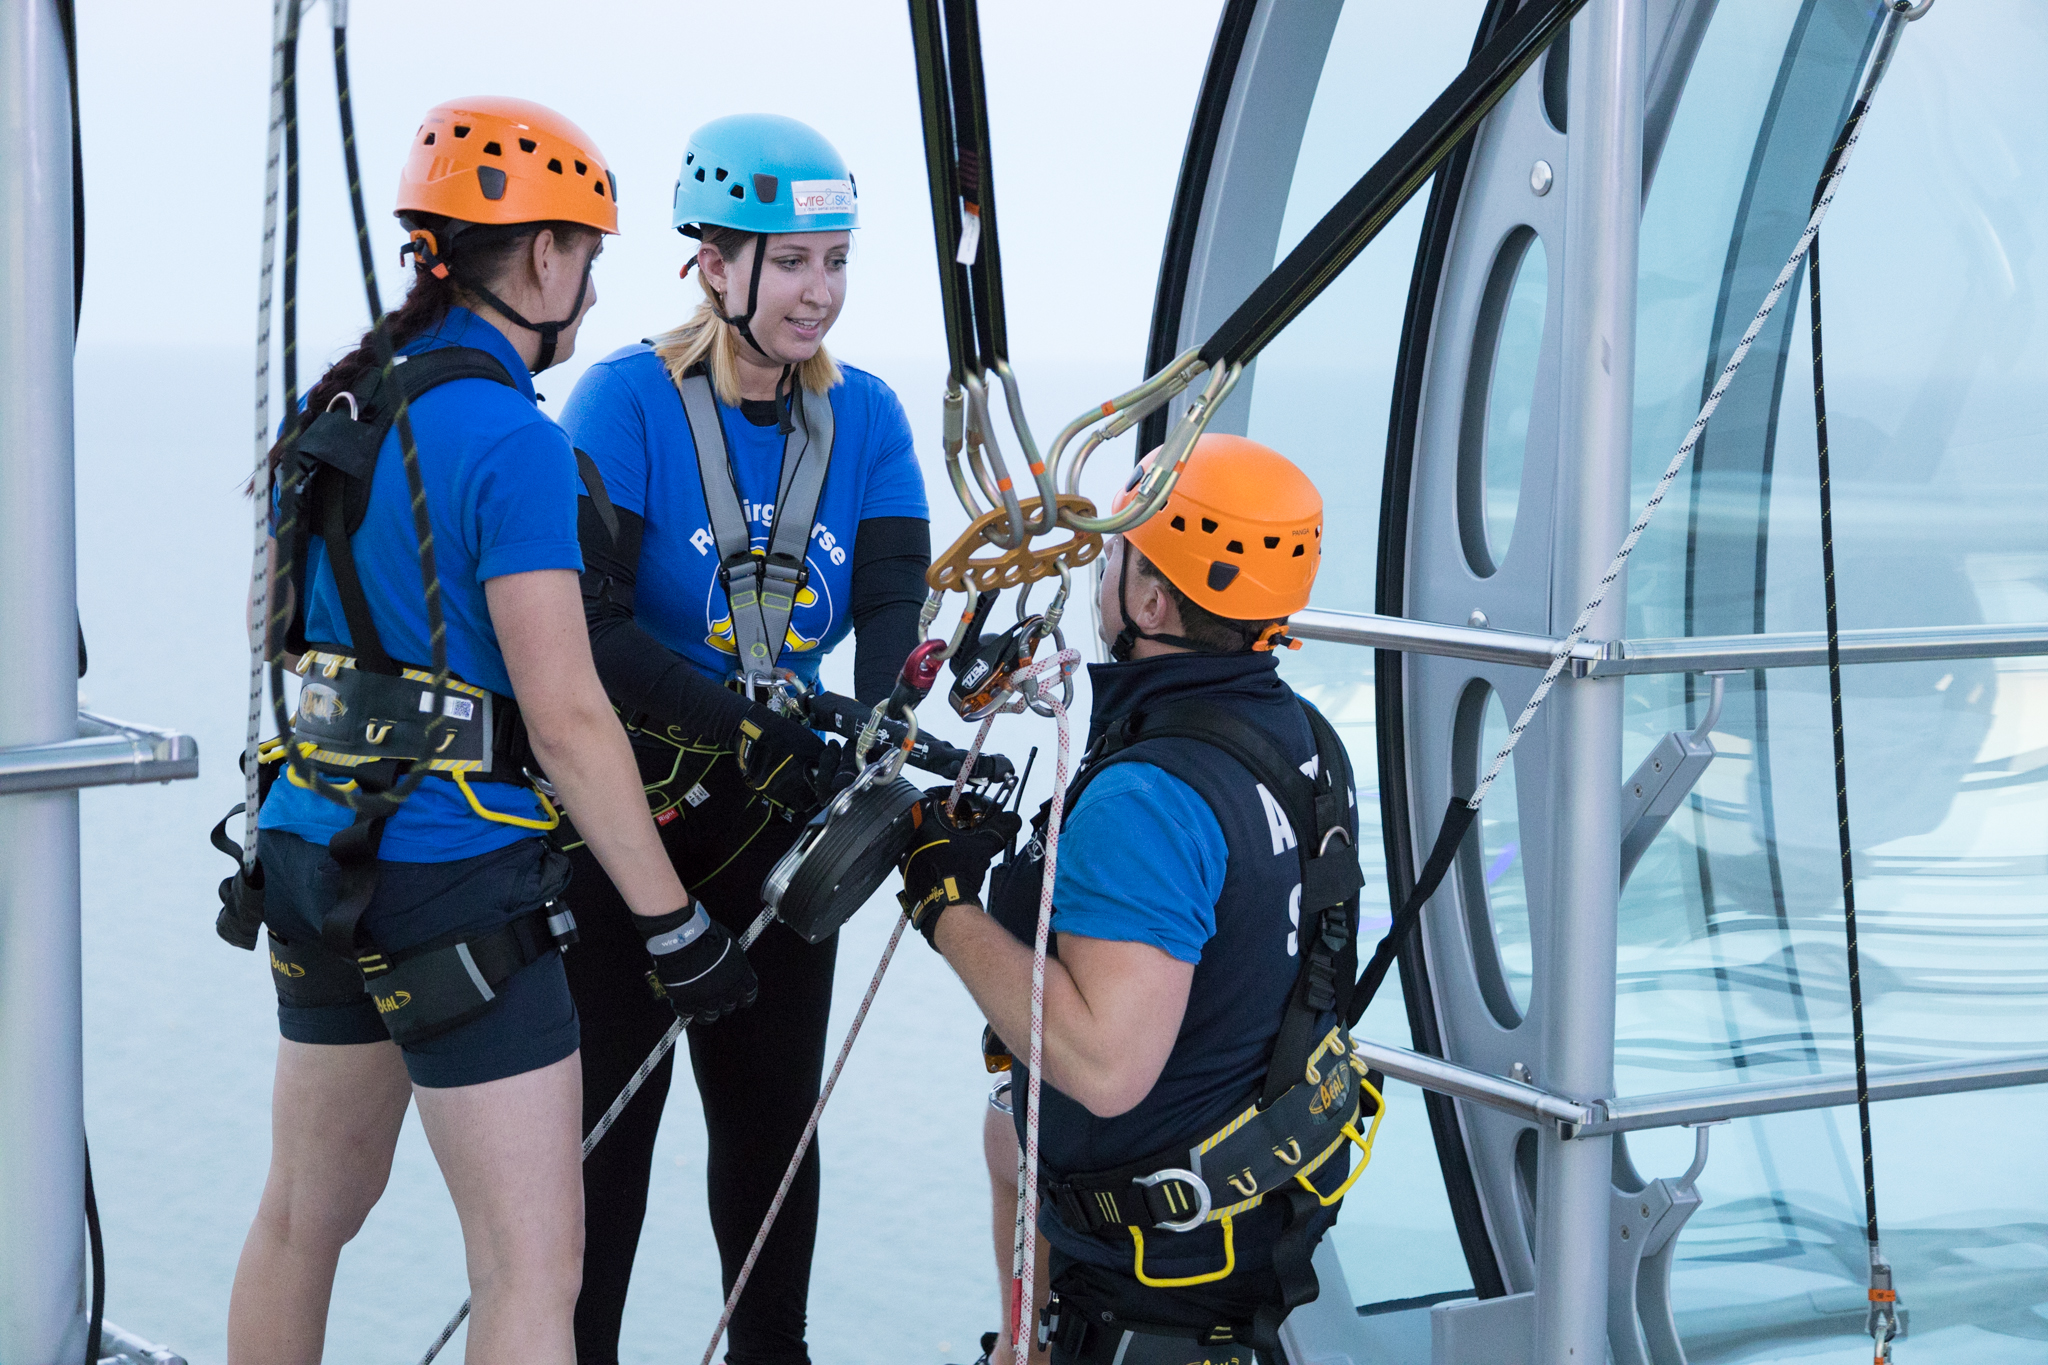 Colette abseils the i360 for Rockinghorse children's charity